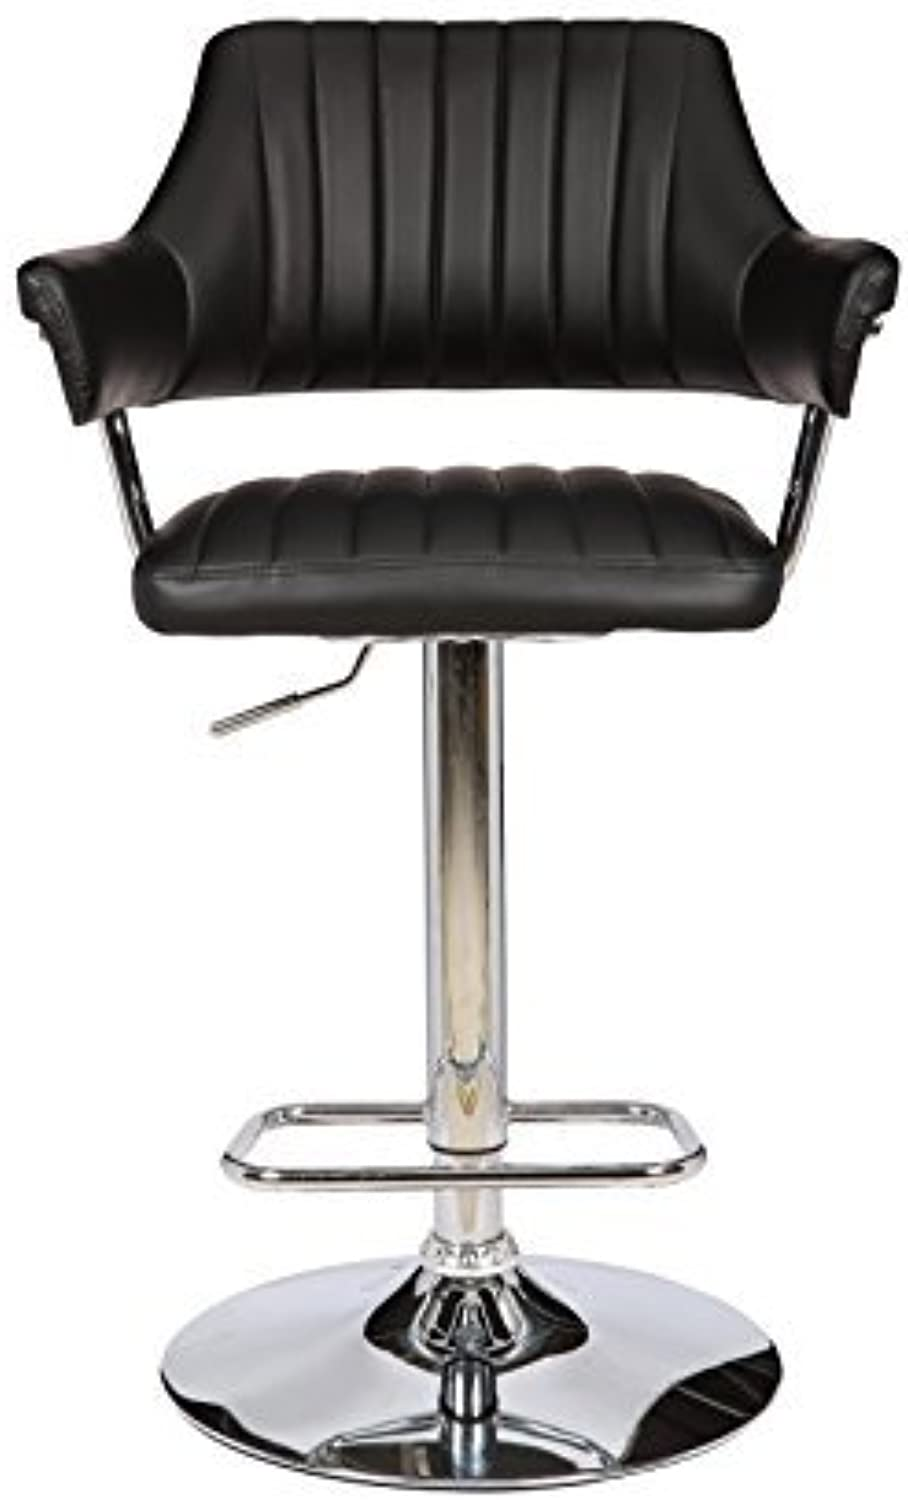 ViscoLogic Series YORK 24 inch Wide, Height Adjustable Leatherette 360 Swivel 23 to 34 inch Bar Stool with Stripes Pattern Quilted Upholstered High Backrest and Armrests, Chrome Pole & Base, Hard Plastic Floor predection Installed in Bar Stool (Single Sto